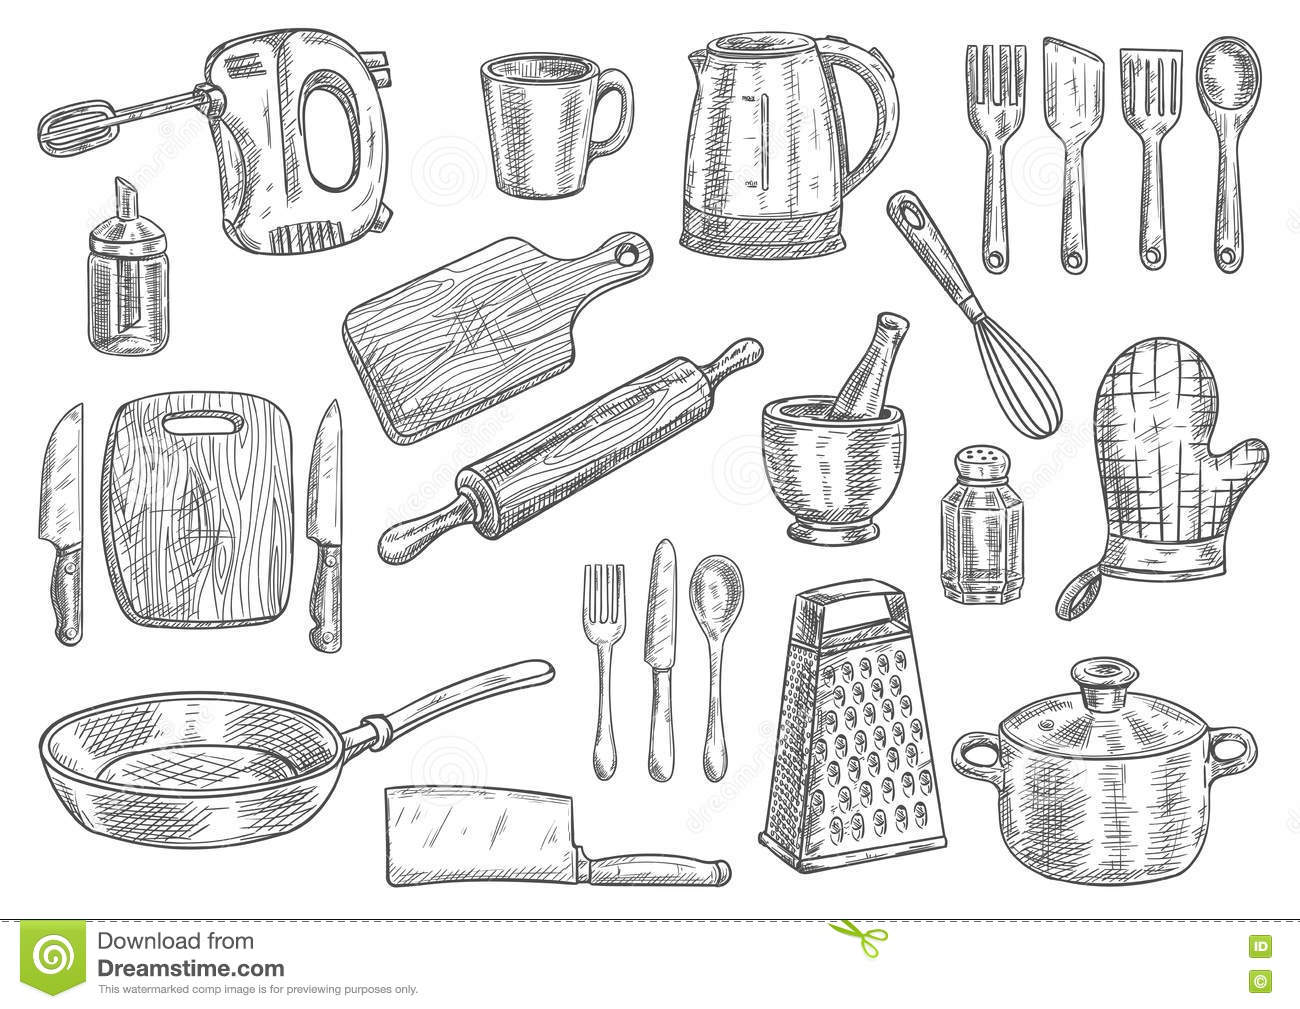 Uncategorized Kitchen Utensils And Appliances kitchen utensils and appliances isolated sketches stock vector sketches